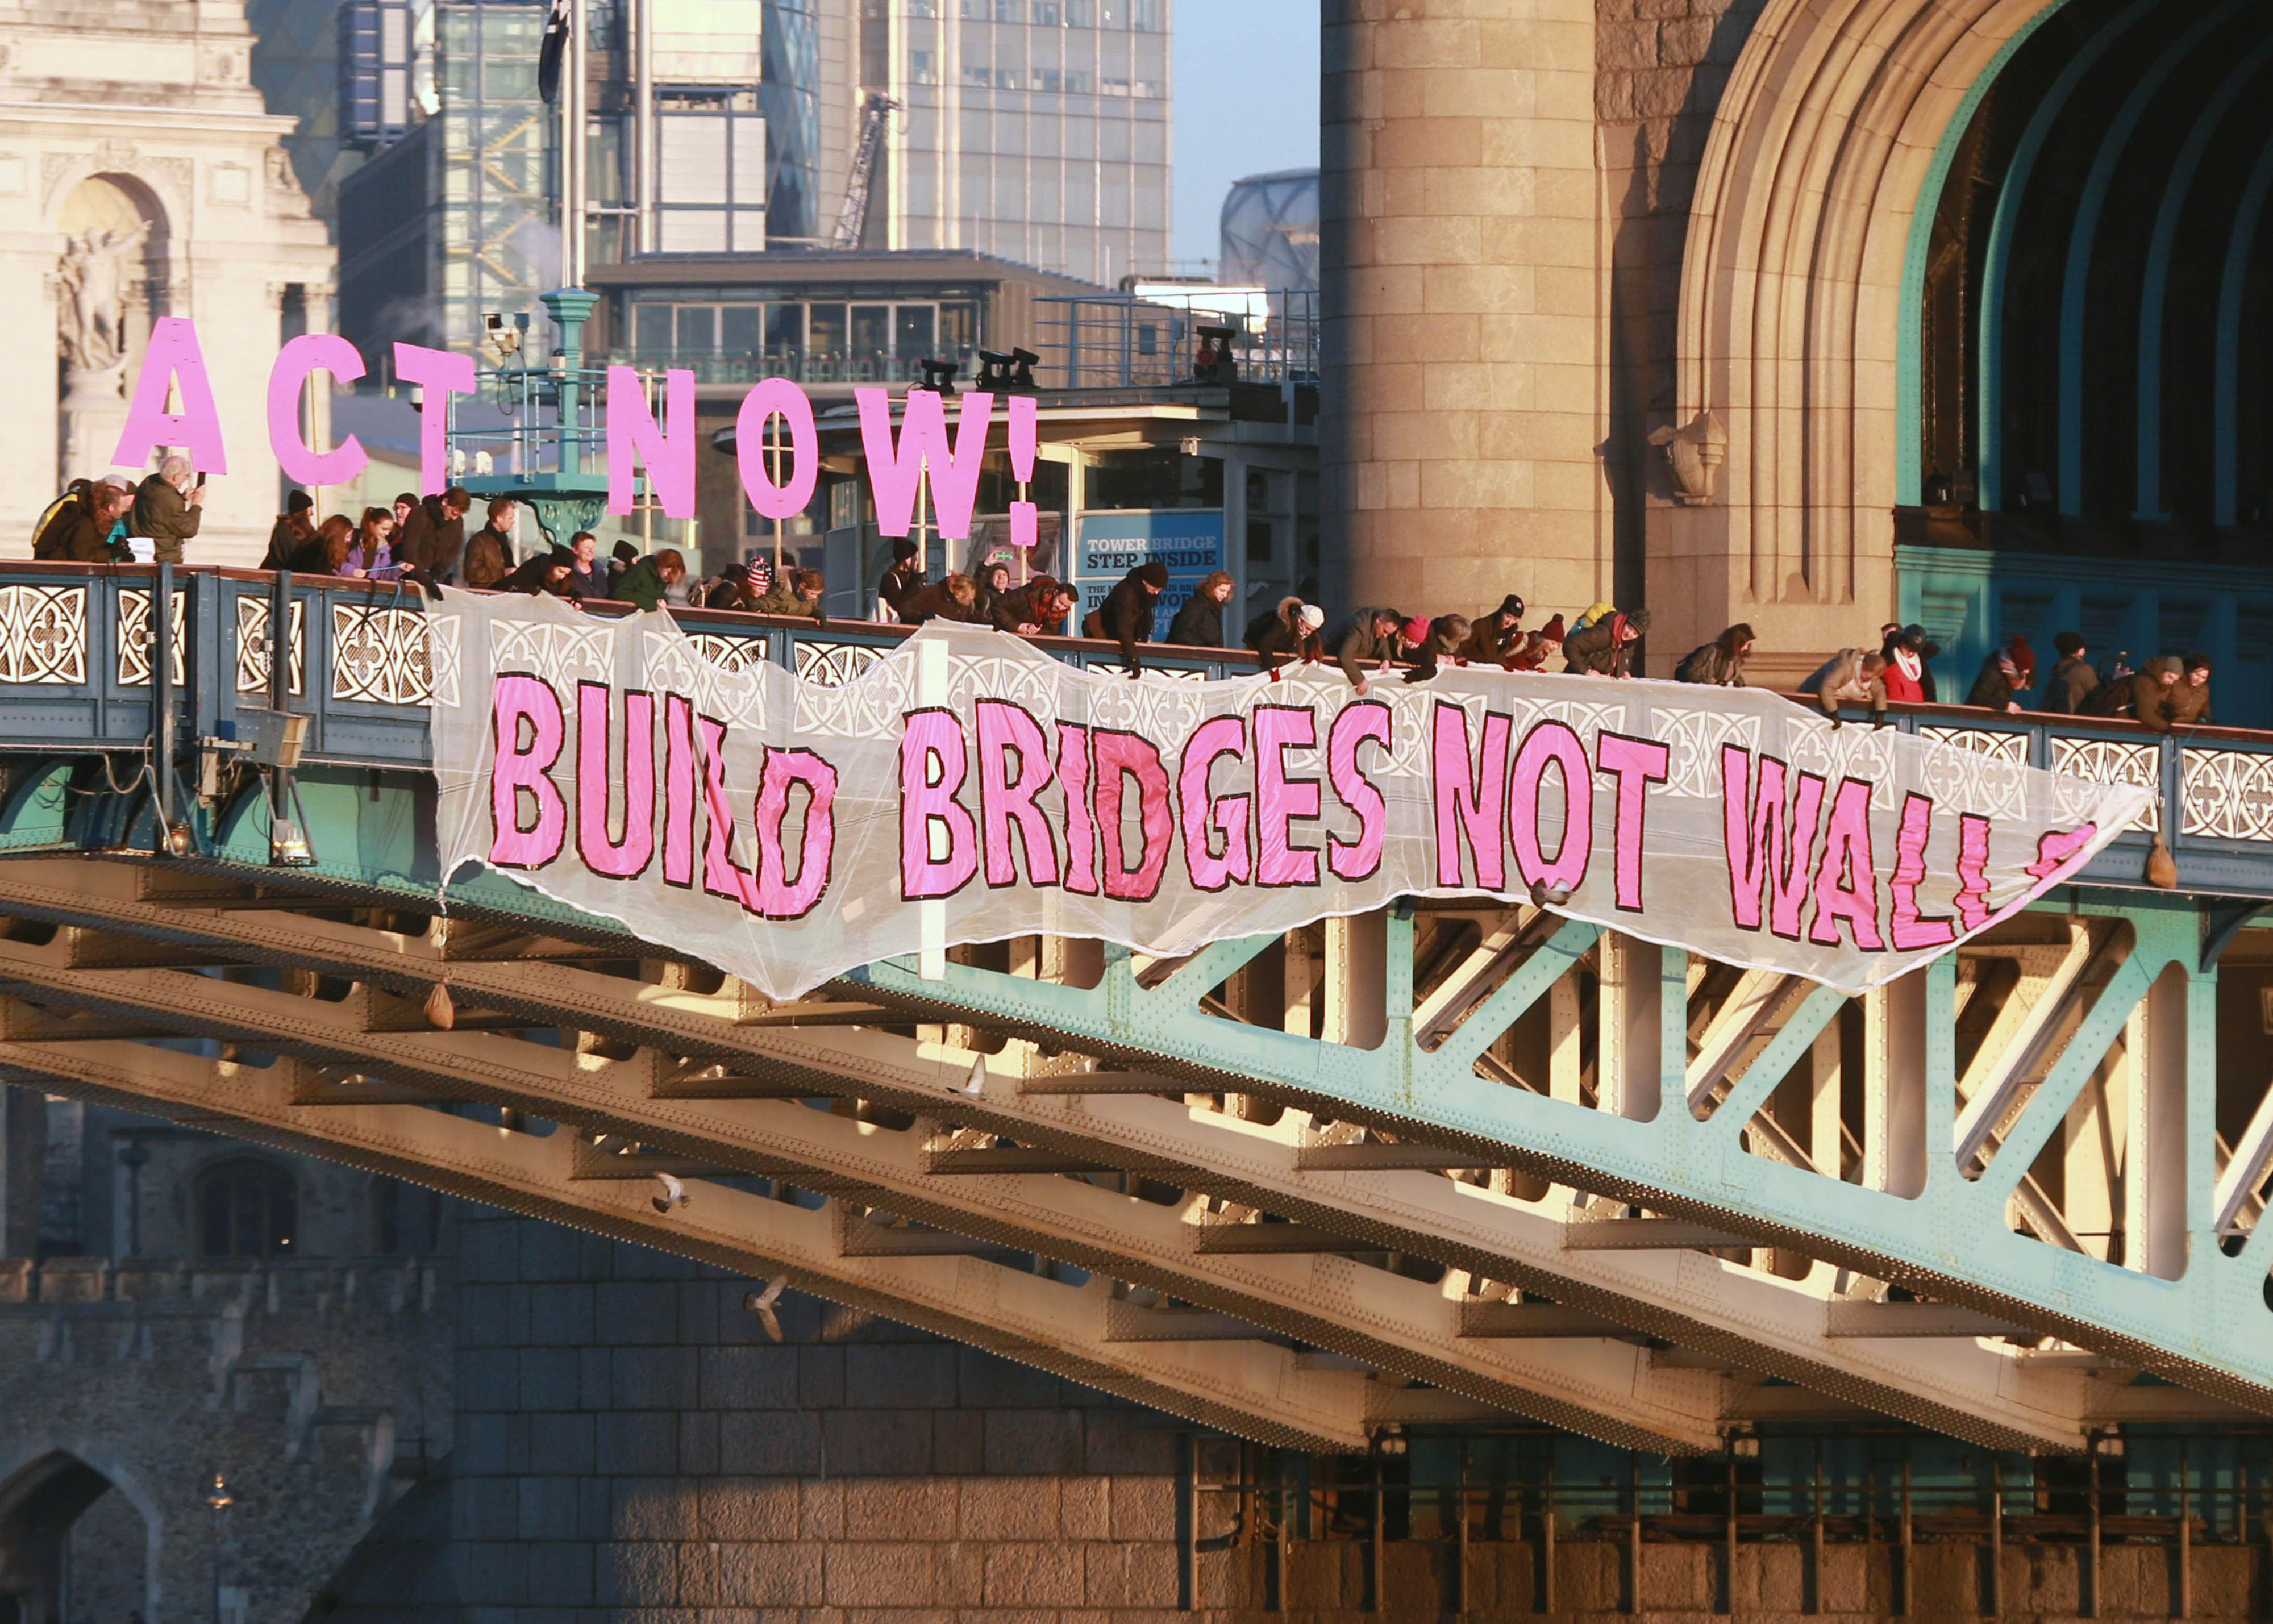 Protesters Defy Donald Trump's 'Politics Of Hate' By Championing 'Bridges Not